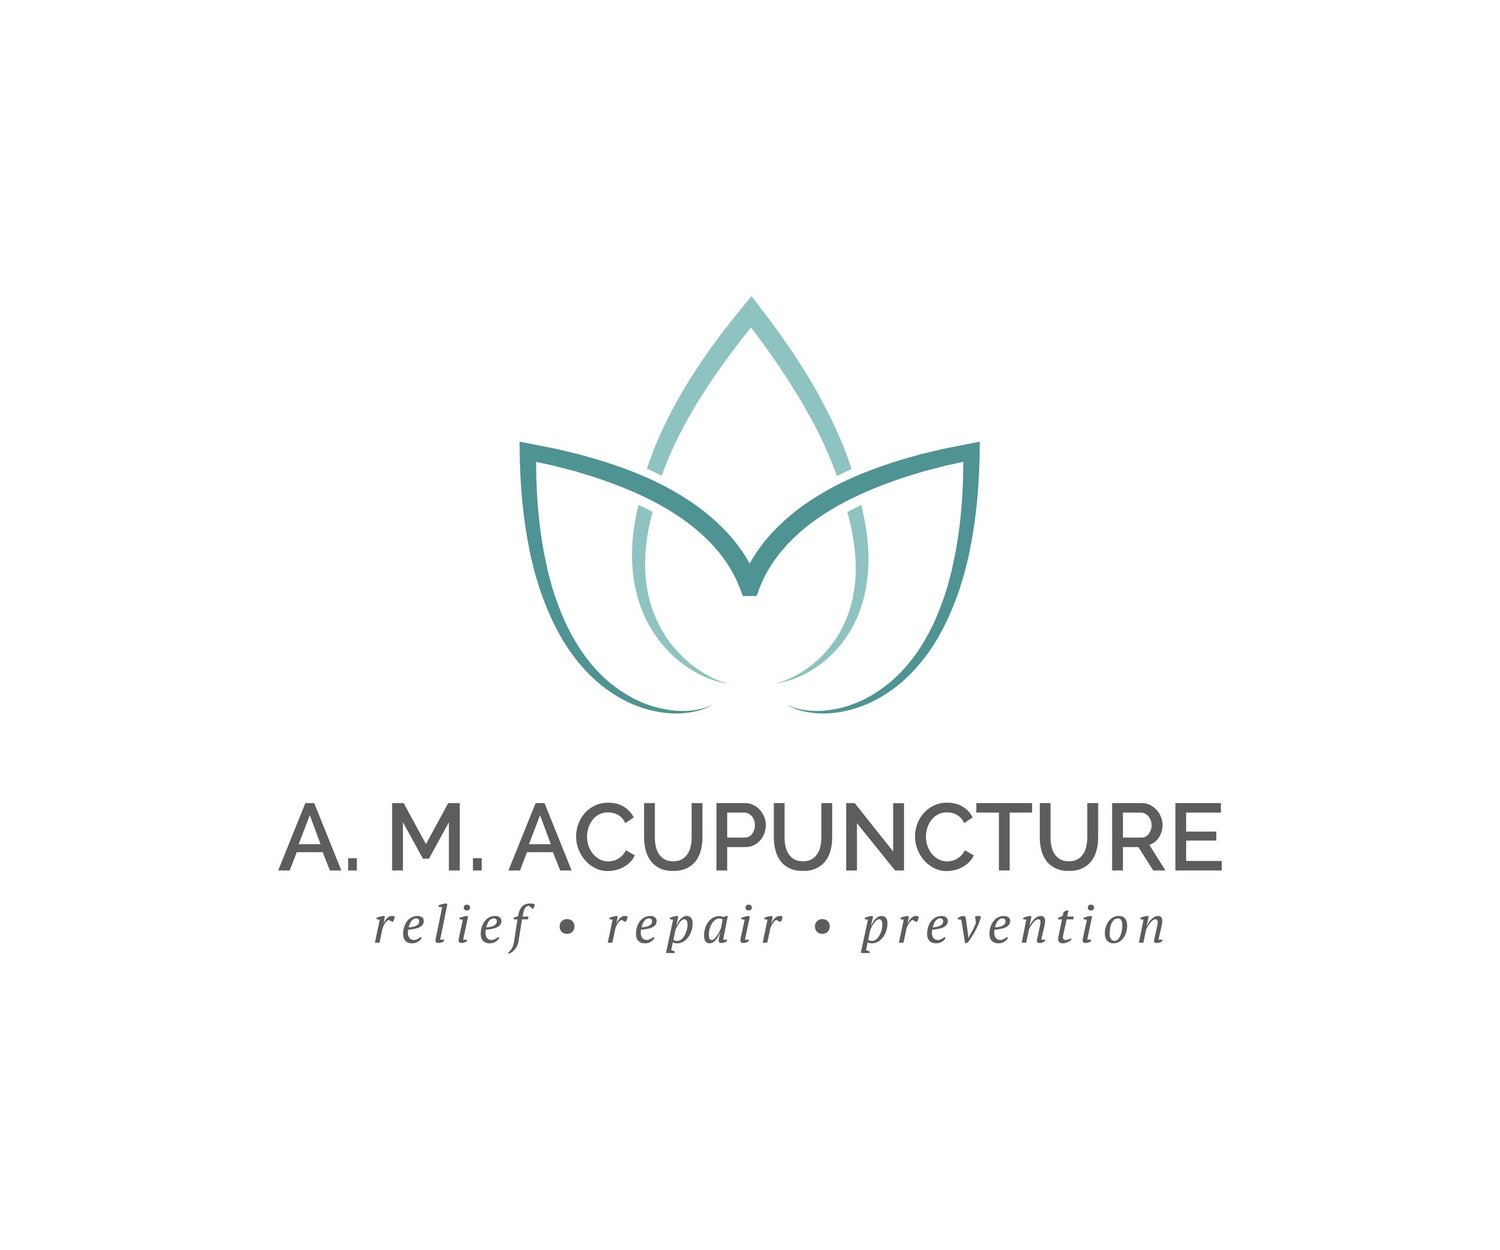 A. M. ACUPUNCTURE, LLC